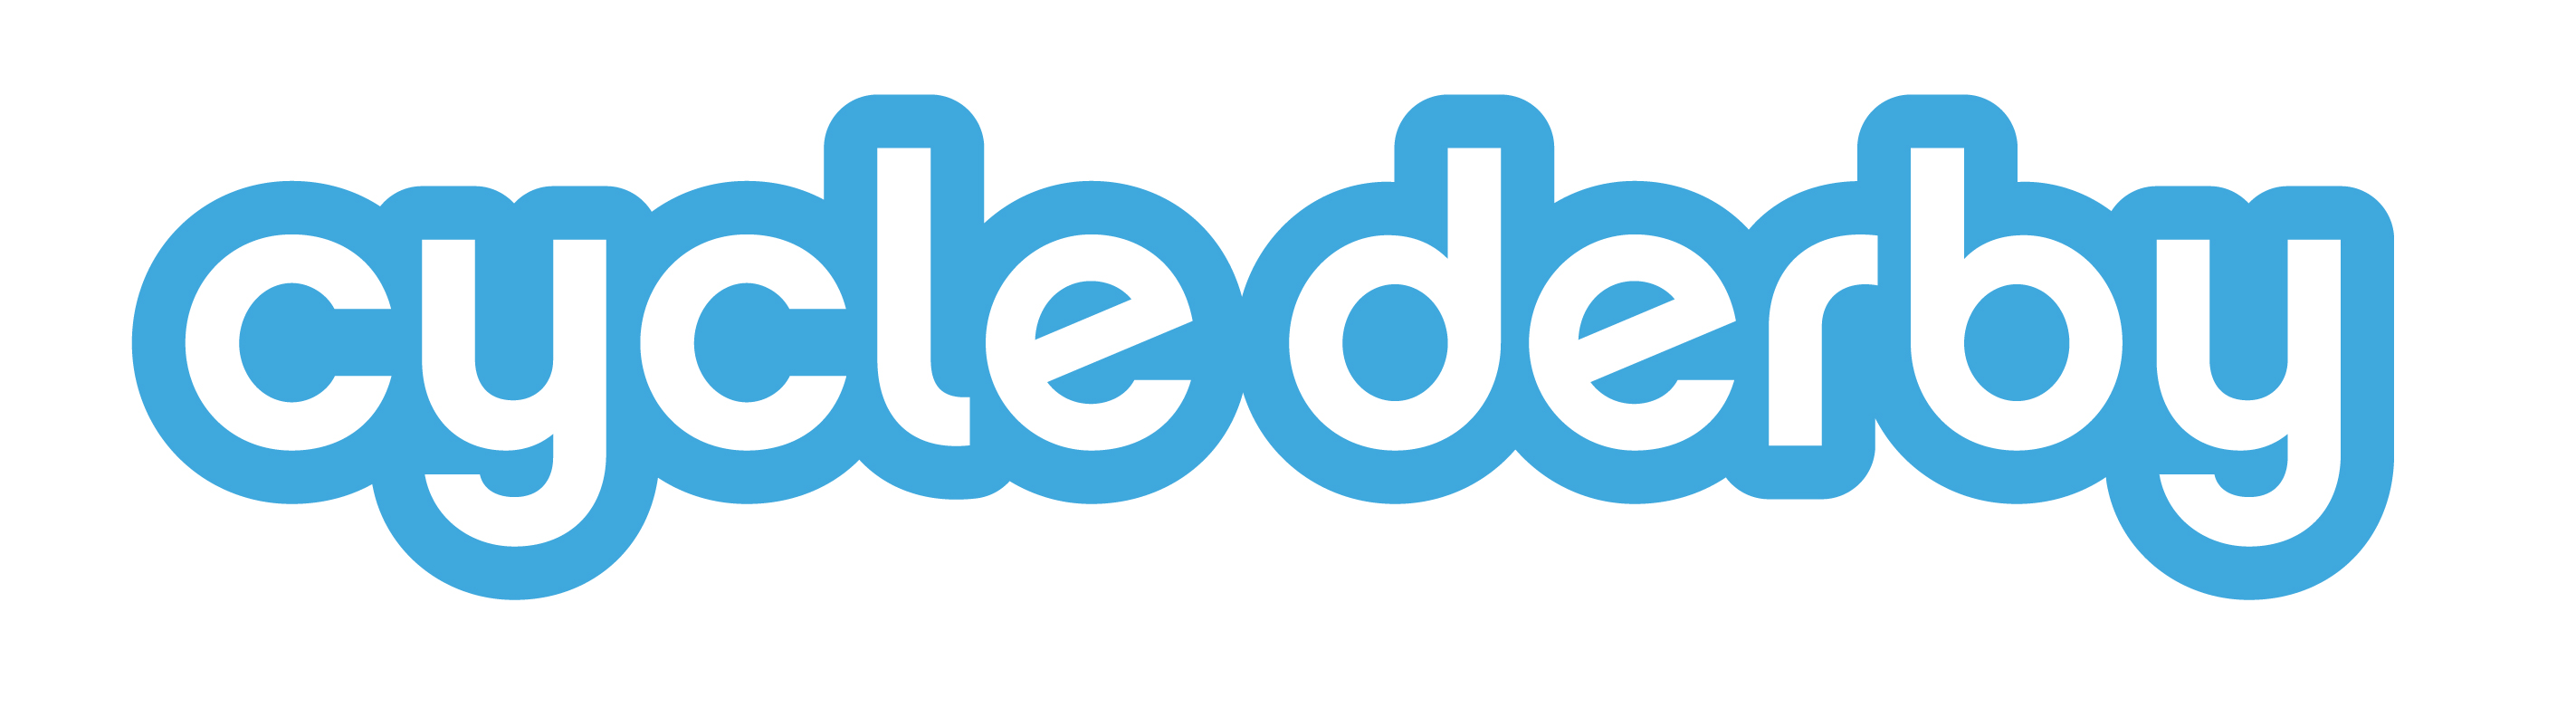 Cycle Derby logo